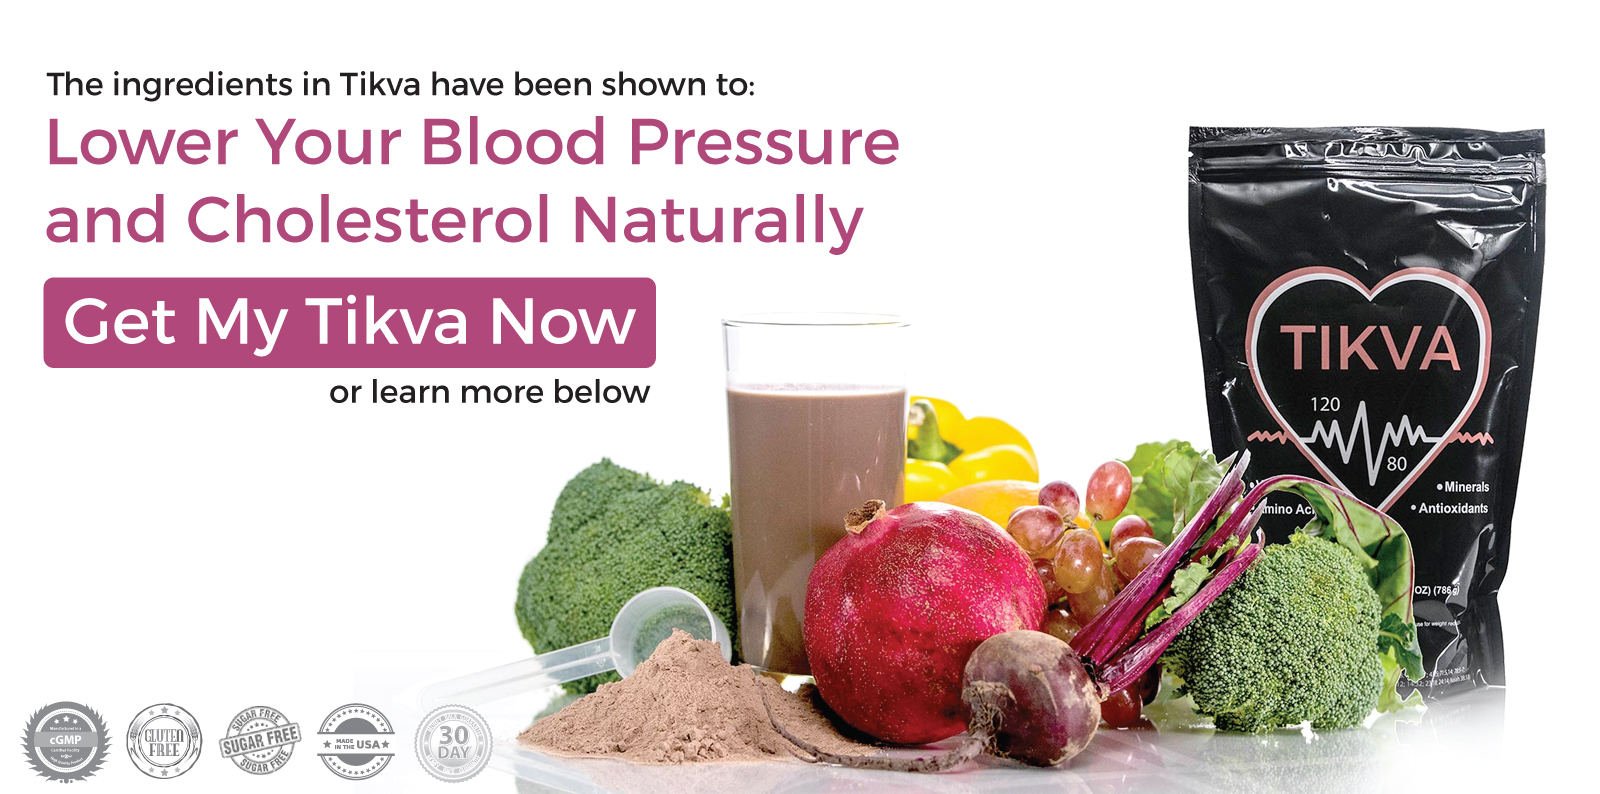 Tikva- Lower Your Blood Pressure Naturally